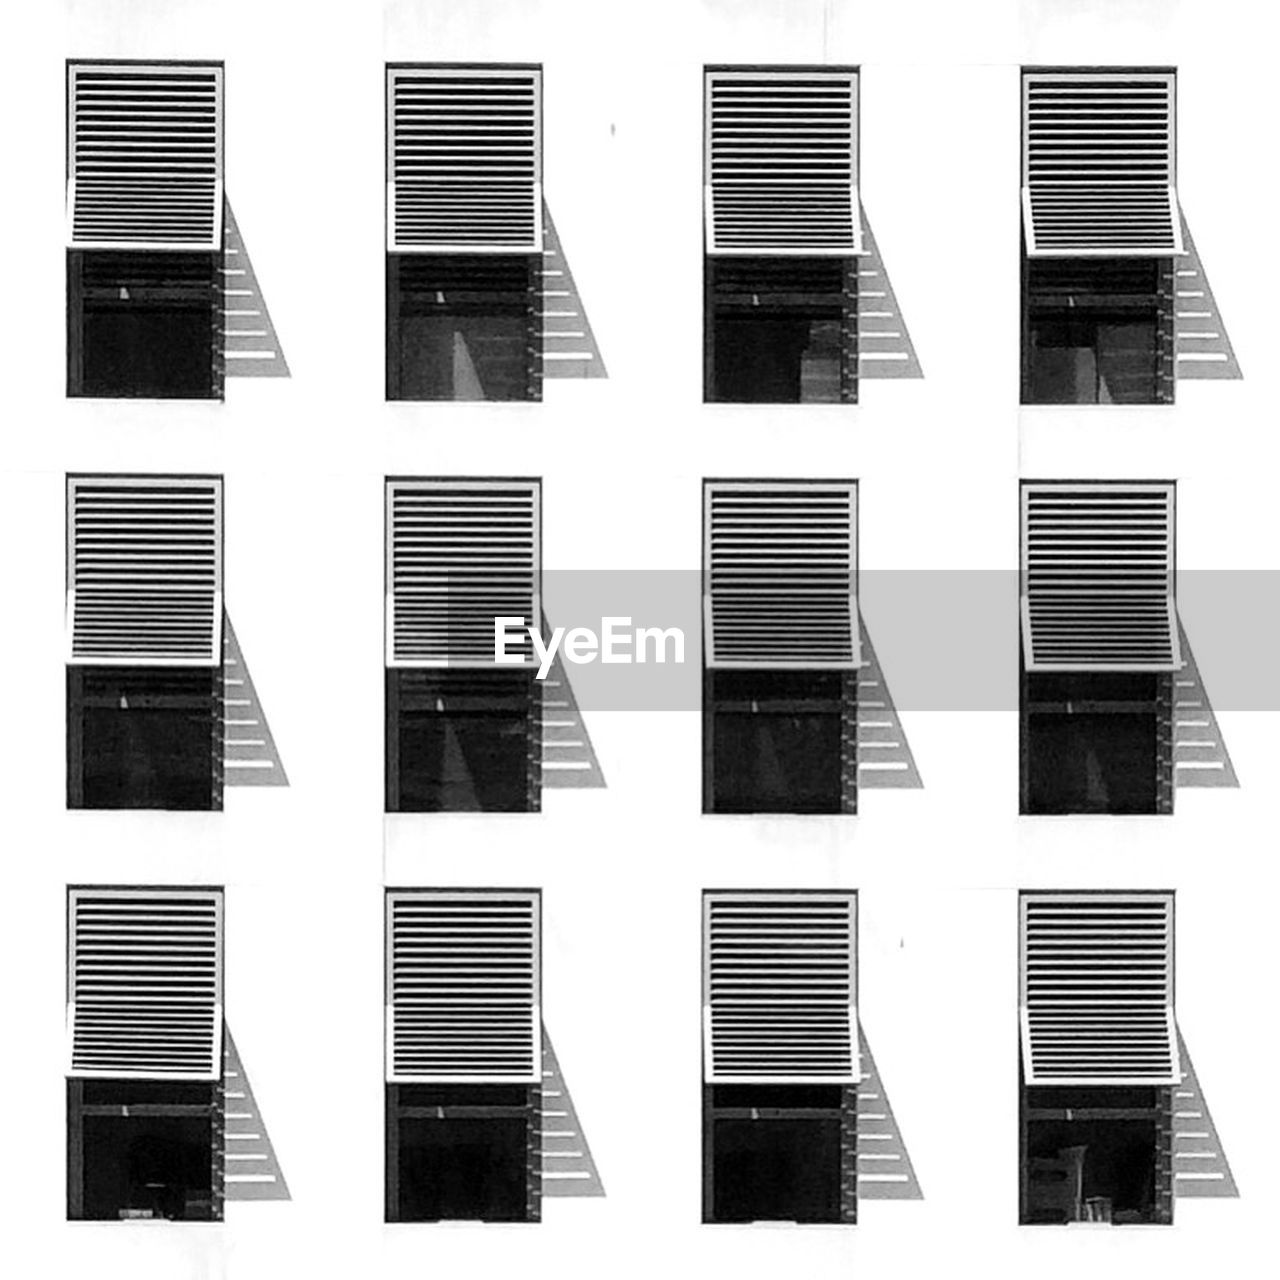 building exterior, architecture, built structure, no people, pattern, window, side by side, in a row, backgrounds, building, full frame, repetition, residential district, shape, outdoors, white background, design, cut out, city, striped